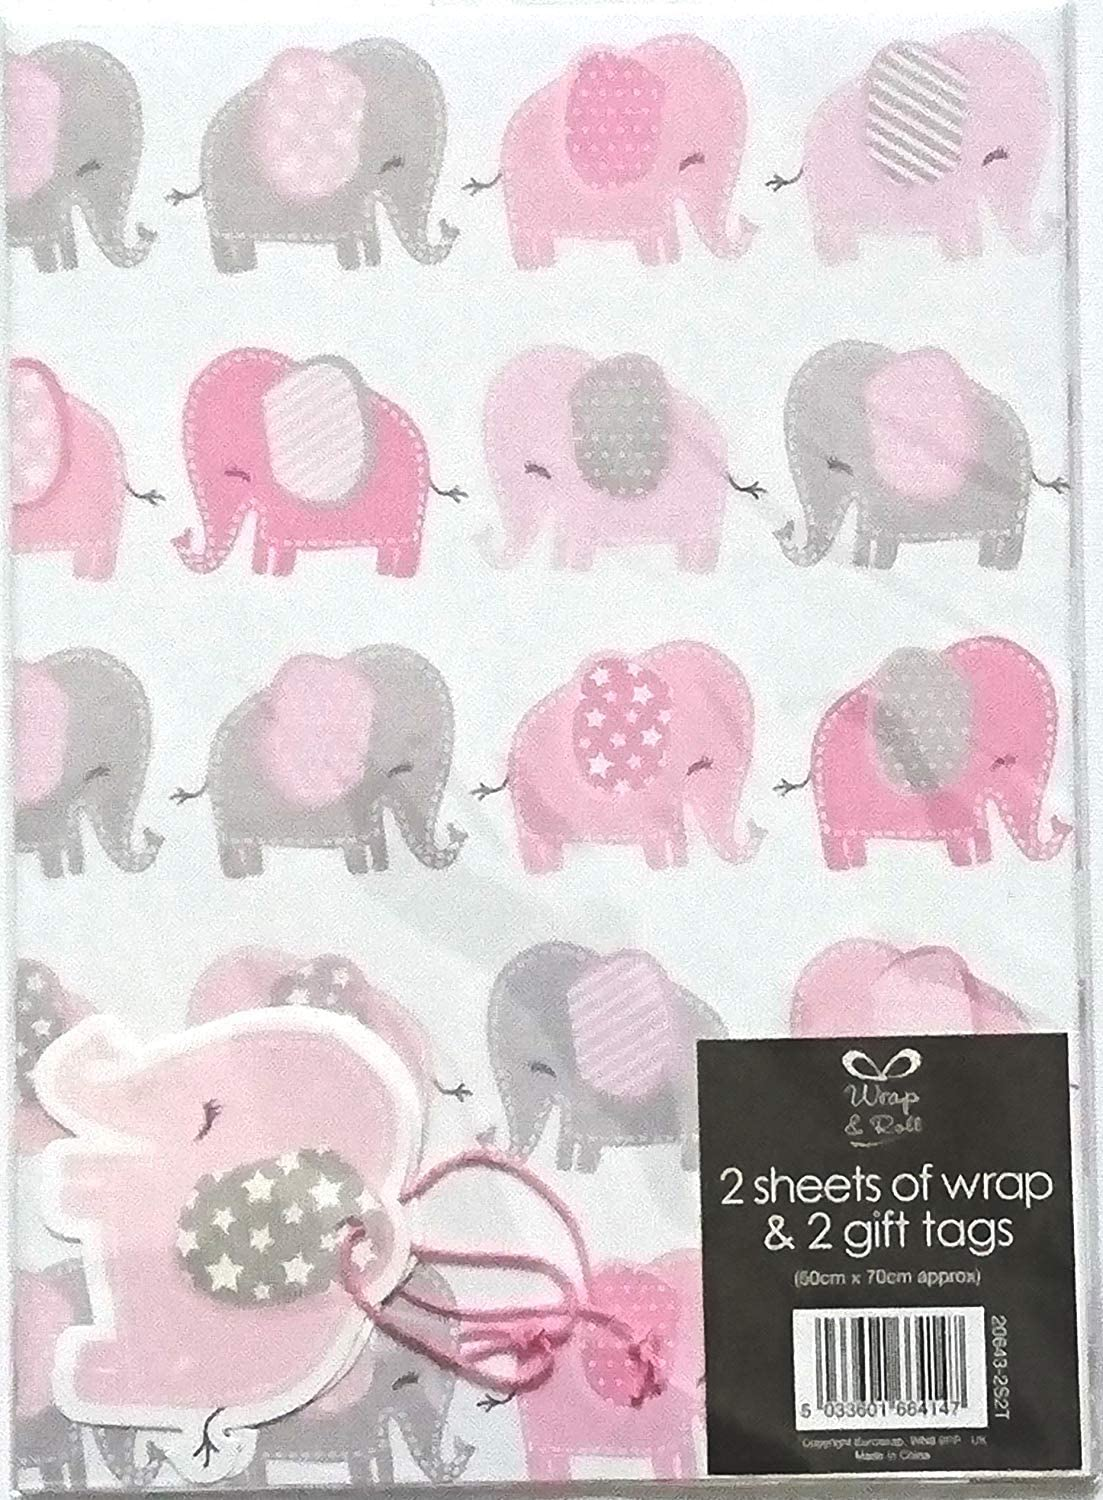 SIMON ELVIN BABY GIRL WRAPPING PAPER 2 SHEETS OF GIFT WRAP /& ONE TAG SE2595